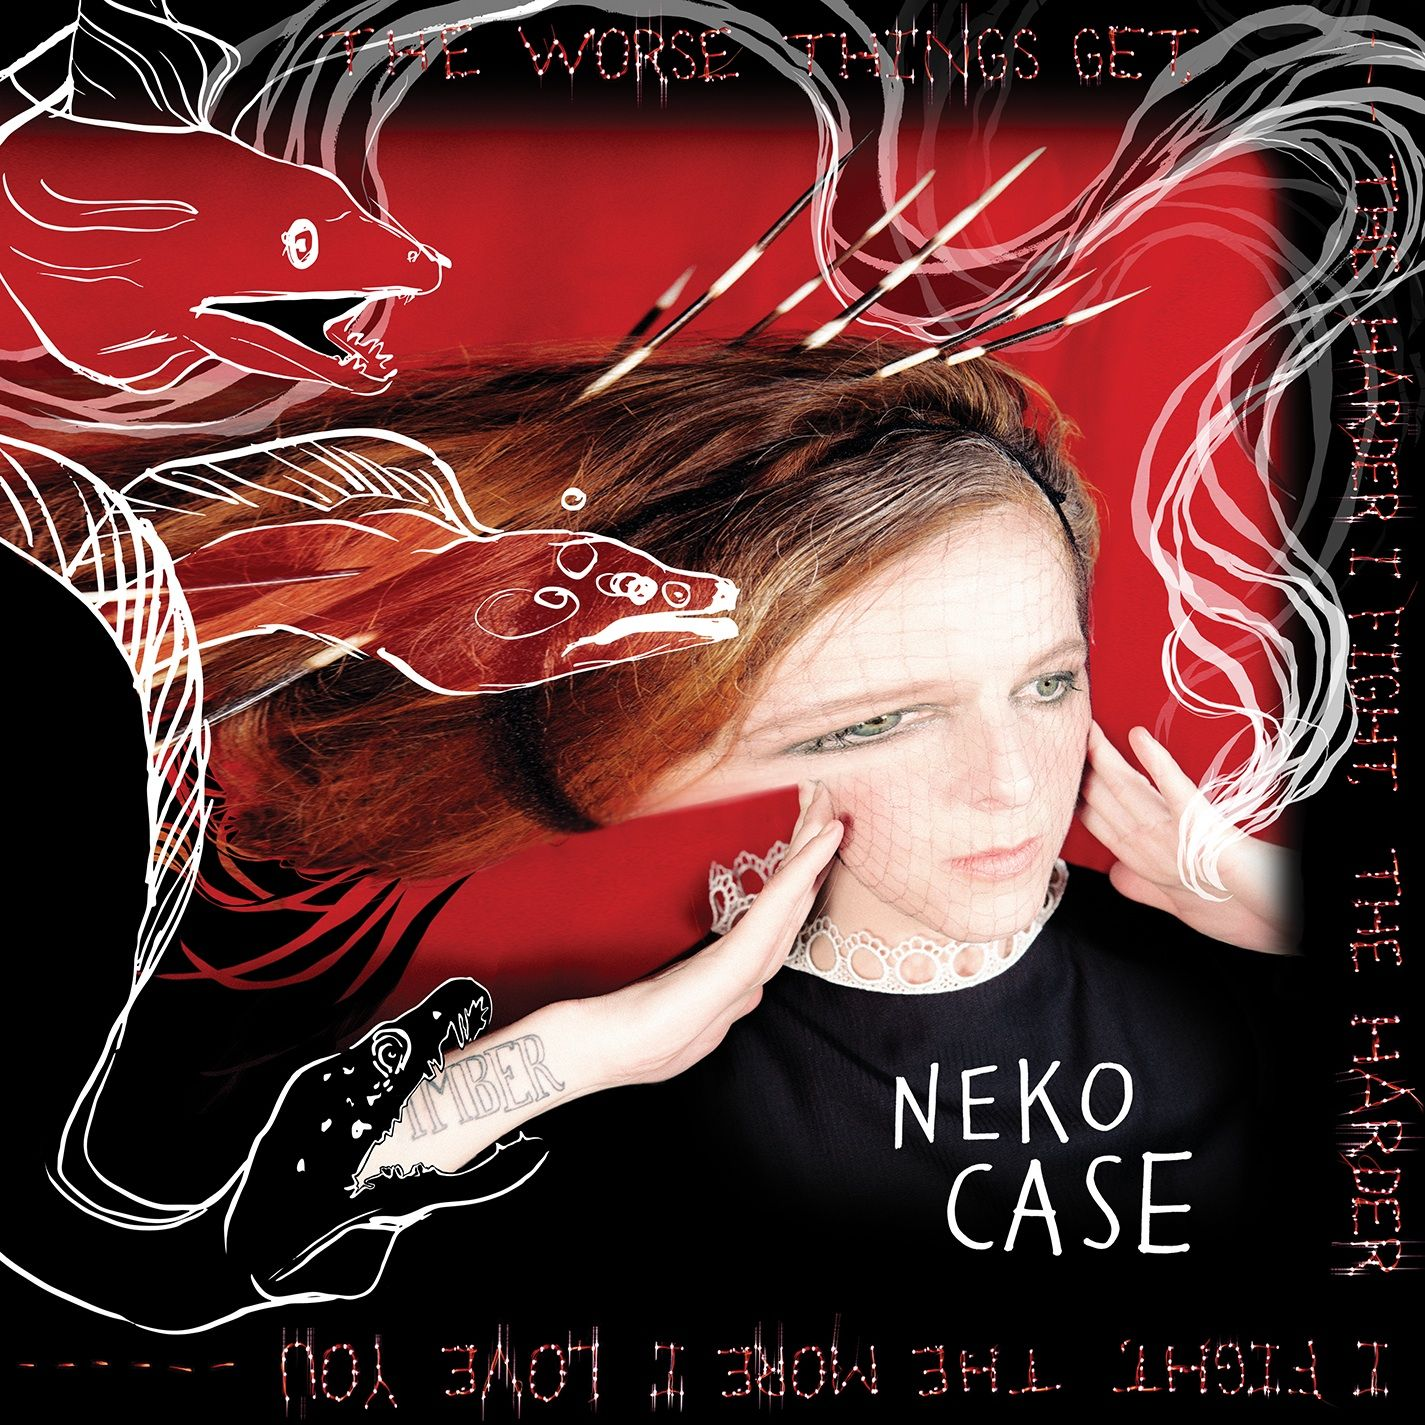 Neko Case The Worse Things Get The Harder I Fight 2 Best Albums Song Reviews Top 10 Albums